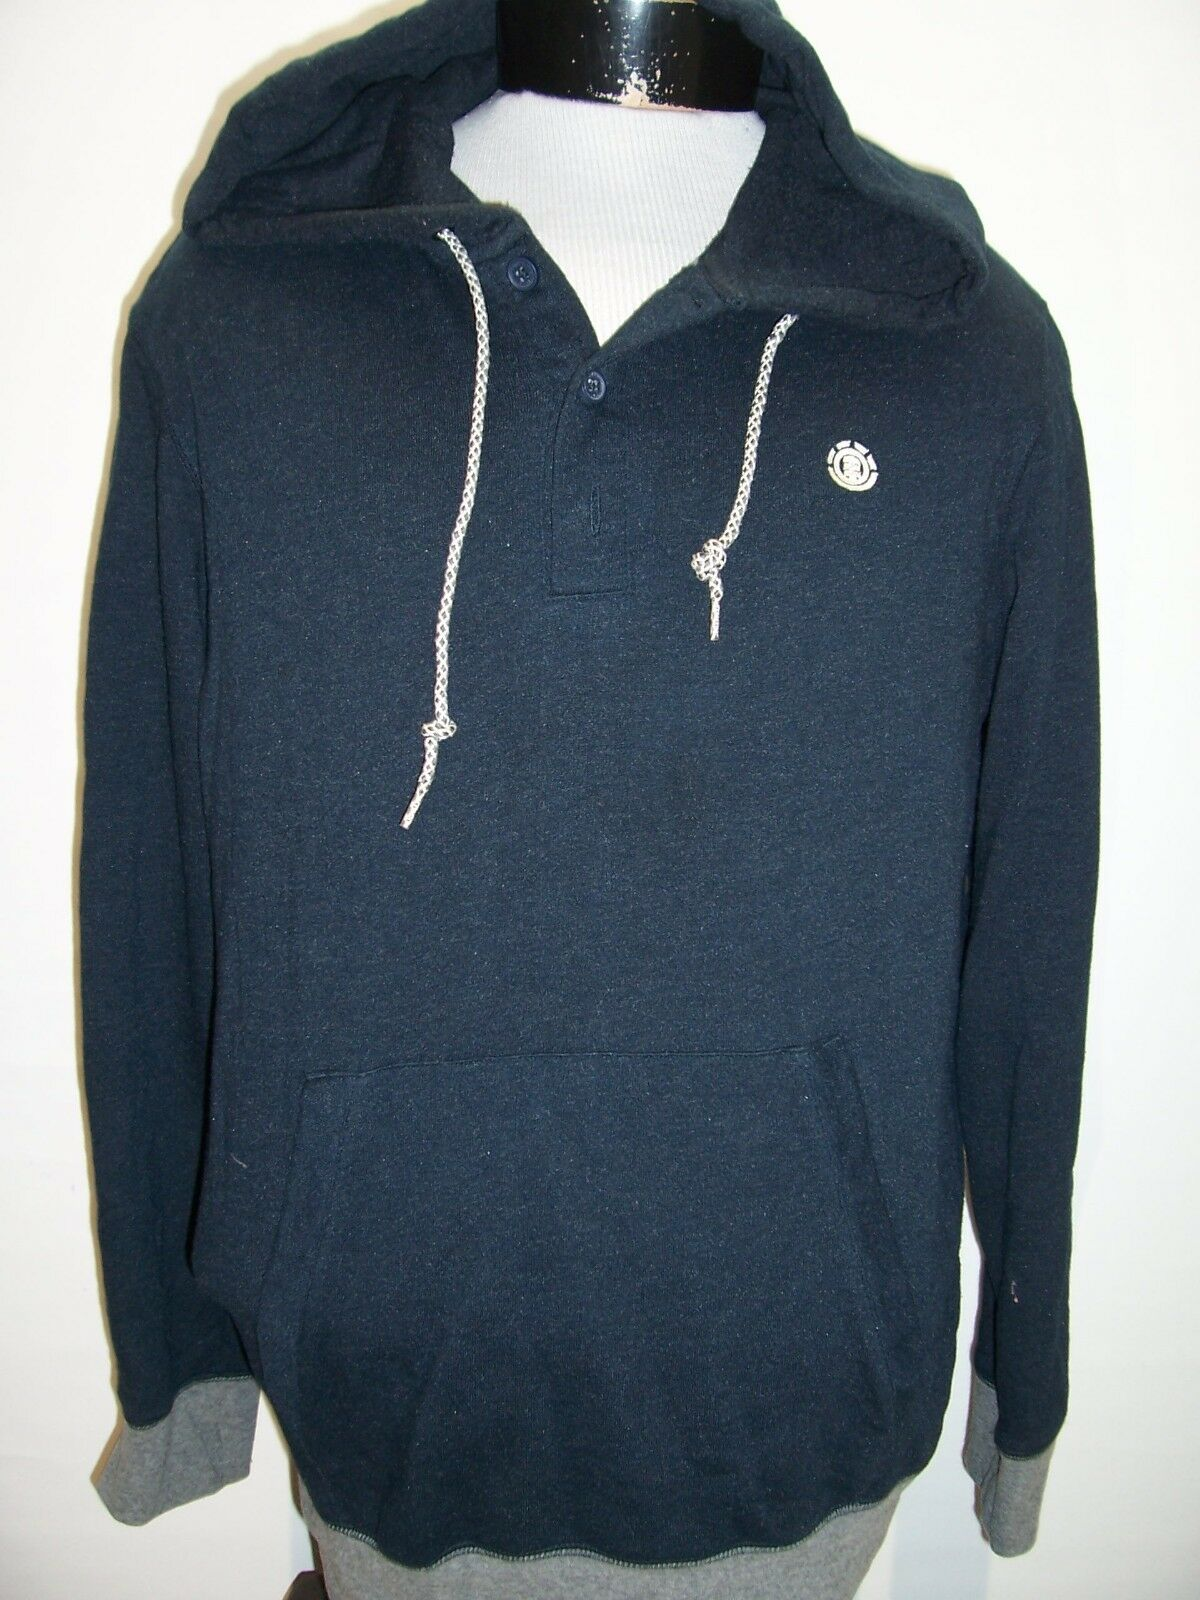 ELEMENT XL X-Large hooded Sweatshirt Combine ship w/Ebay cart